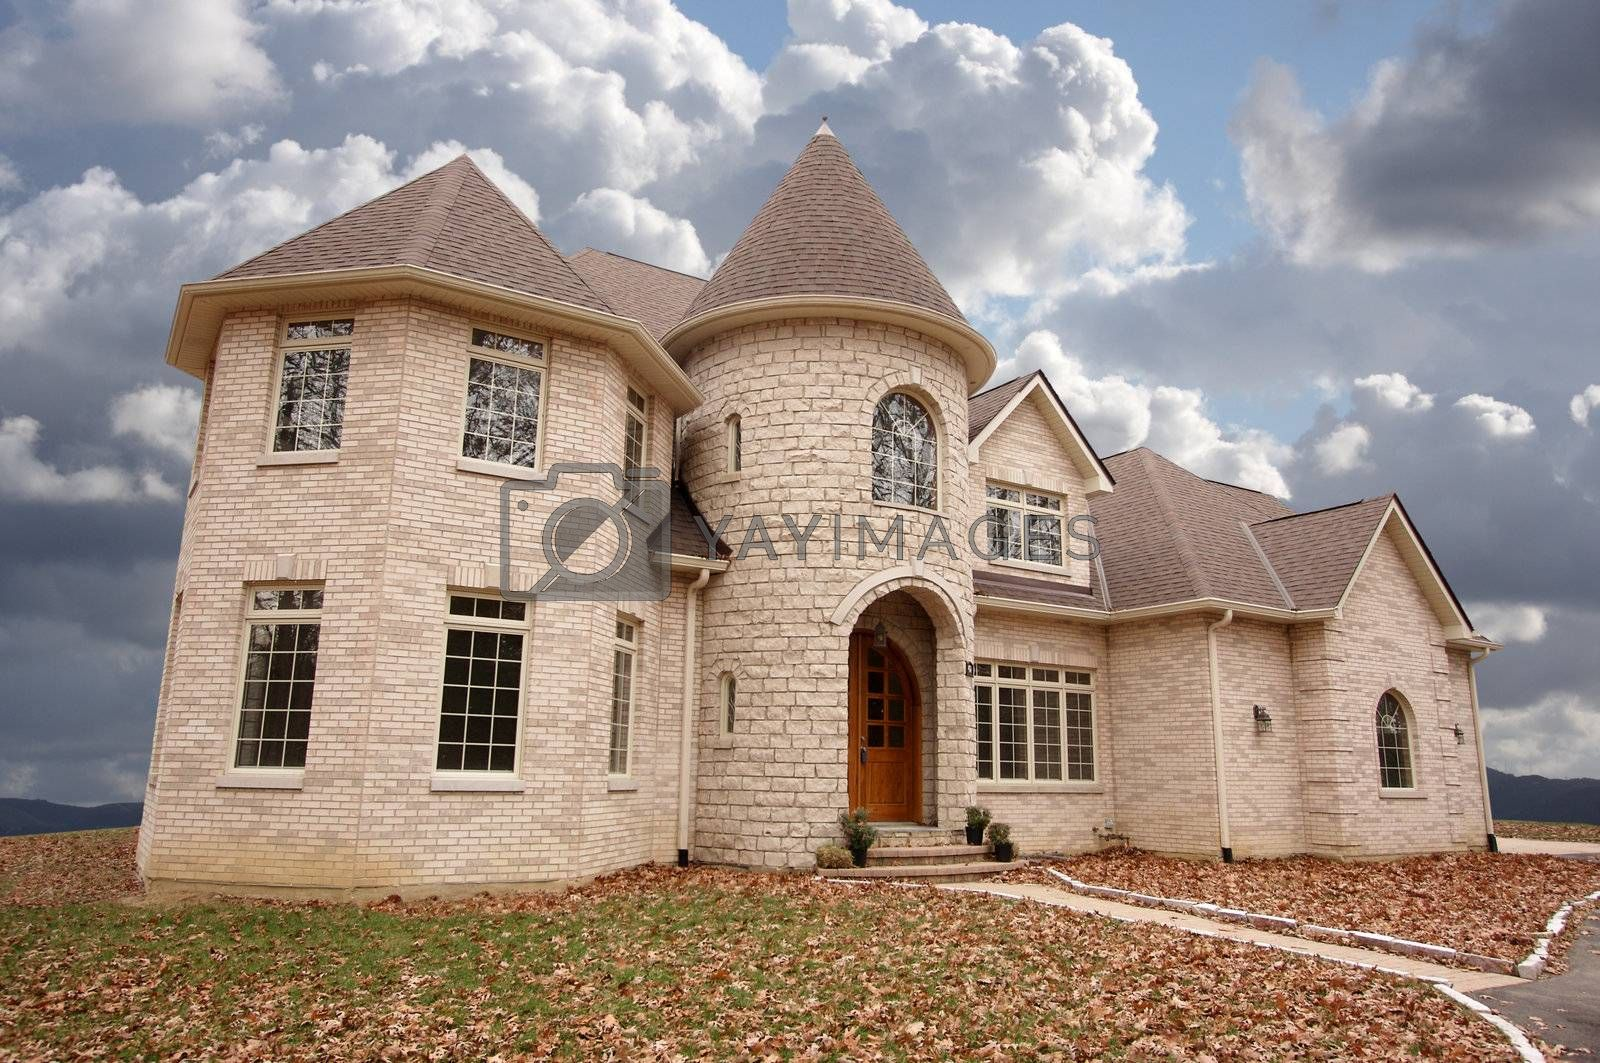 Majestic Newly Constructed Home Facade on a Blustry Day